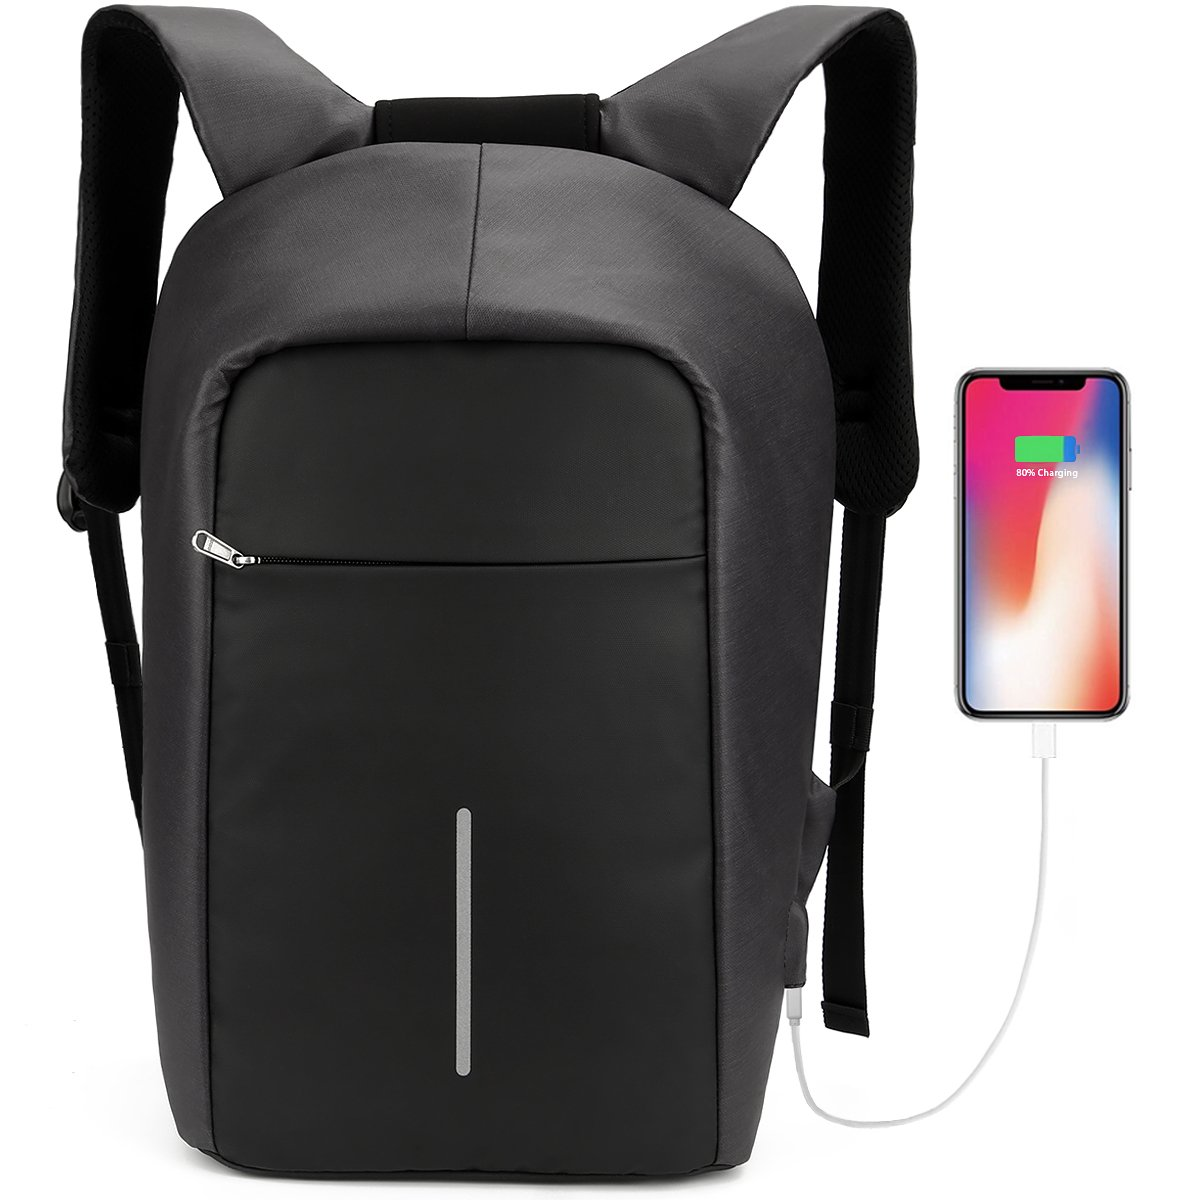 Travel Backpack Anti-theft Business Laptop Bag for 15.6 Inch Notebook, Tocode Water Resistant Schoolbag Casual Daypack with USB Charging Port for Men and Women Black